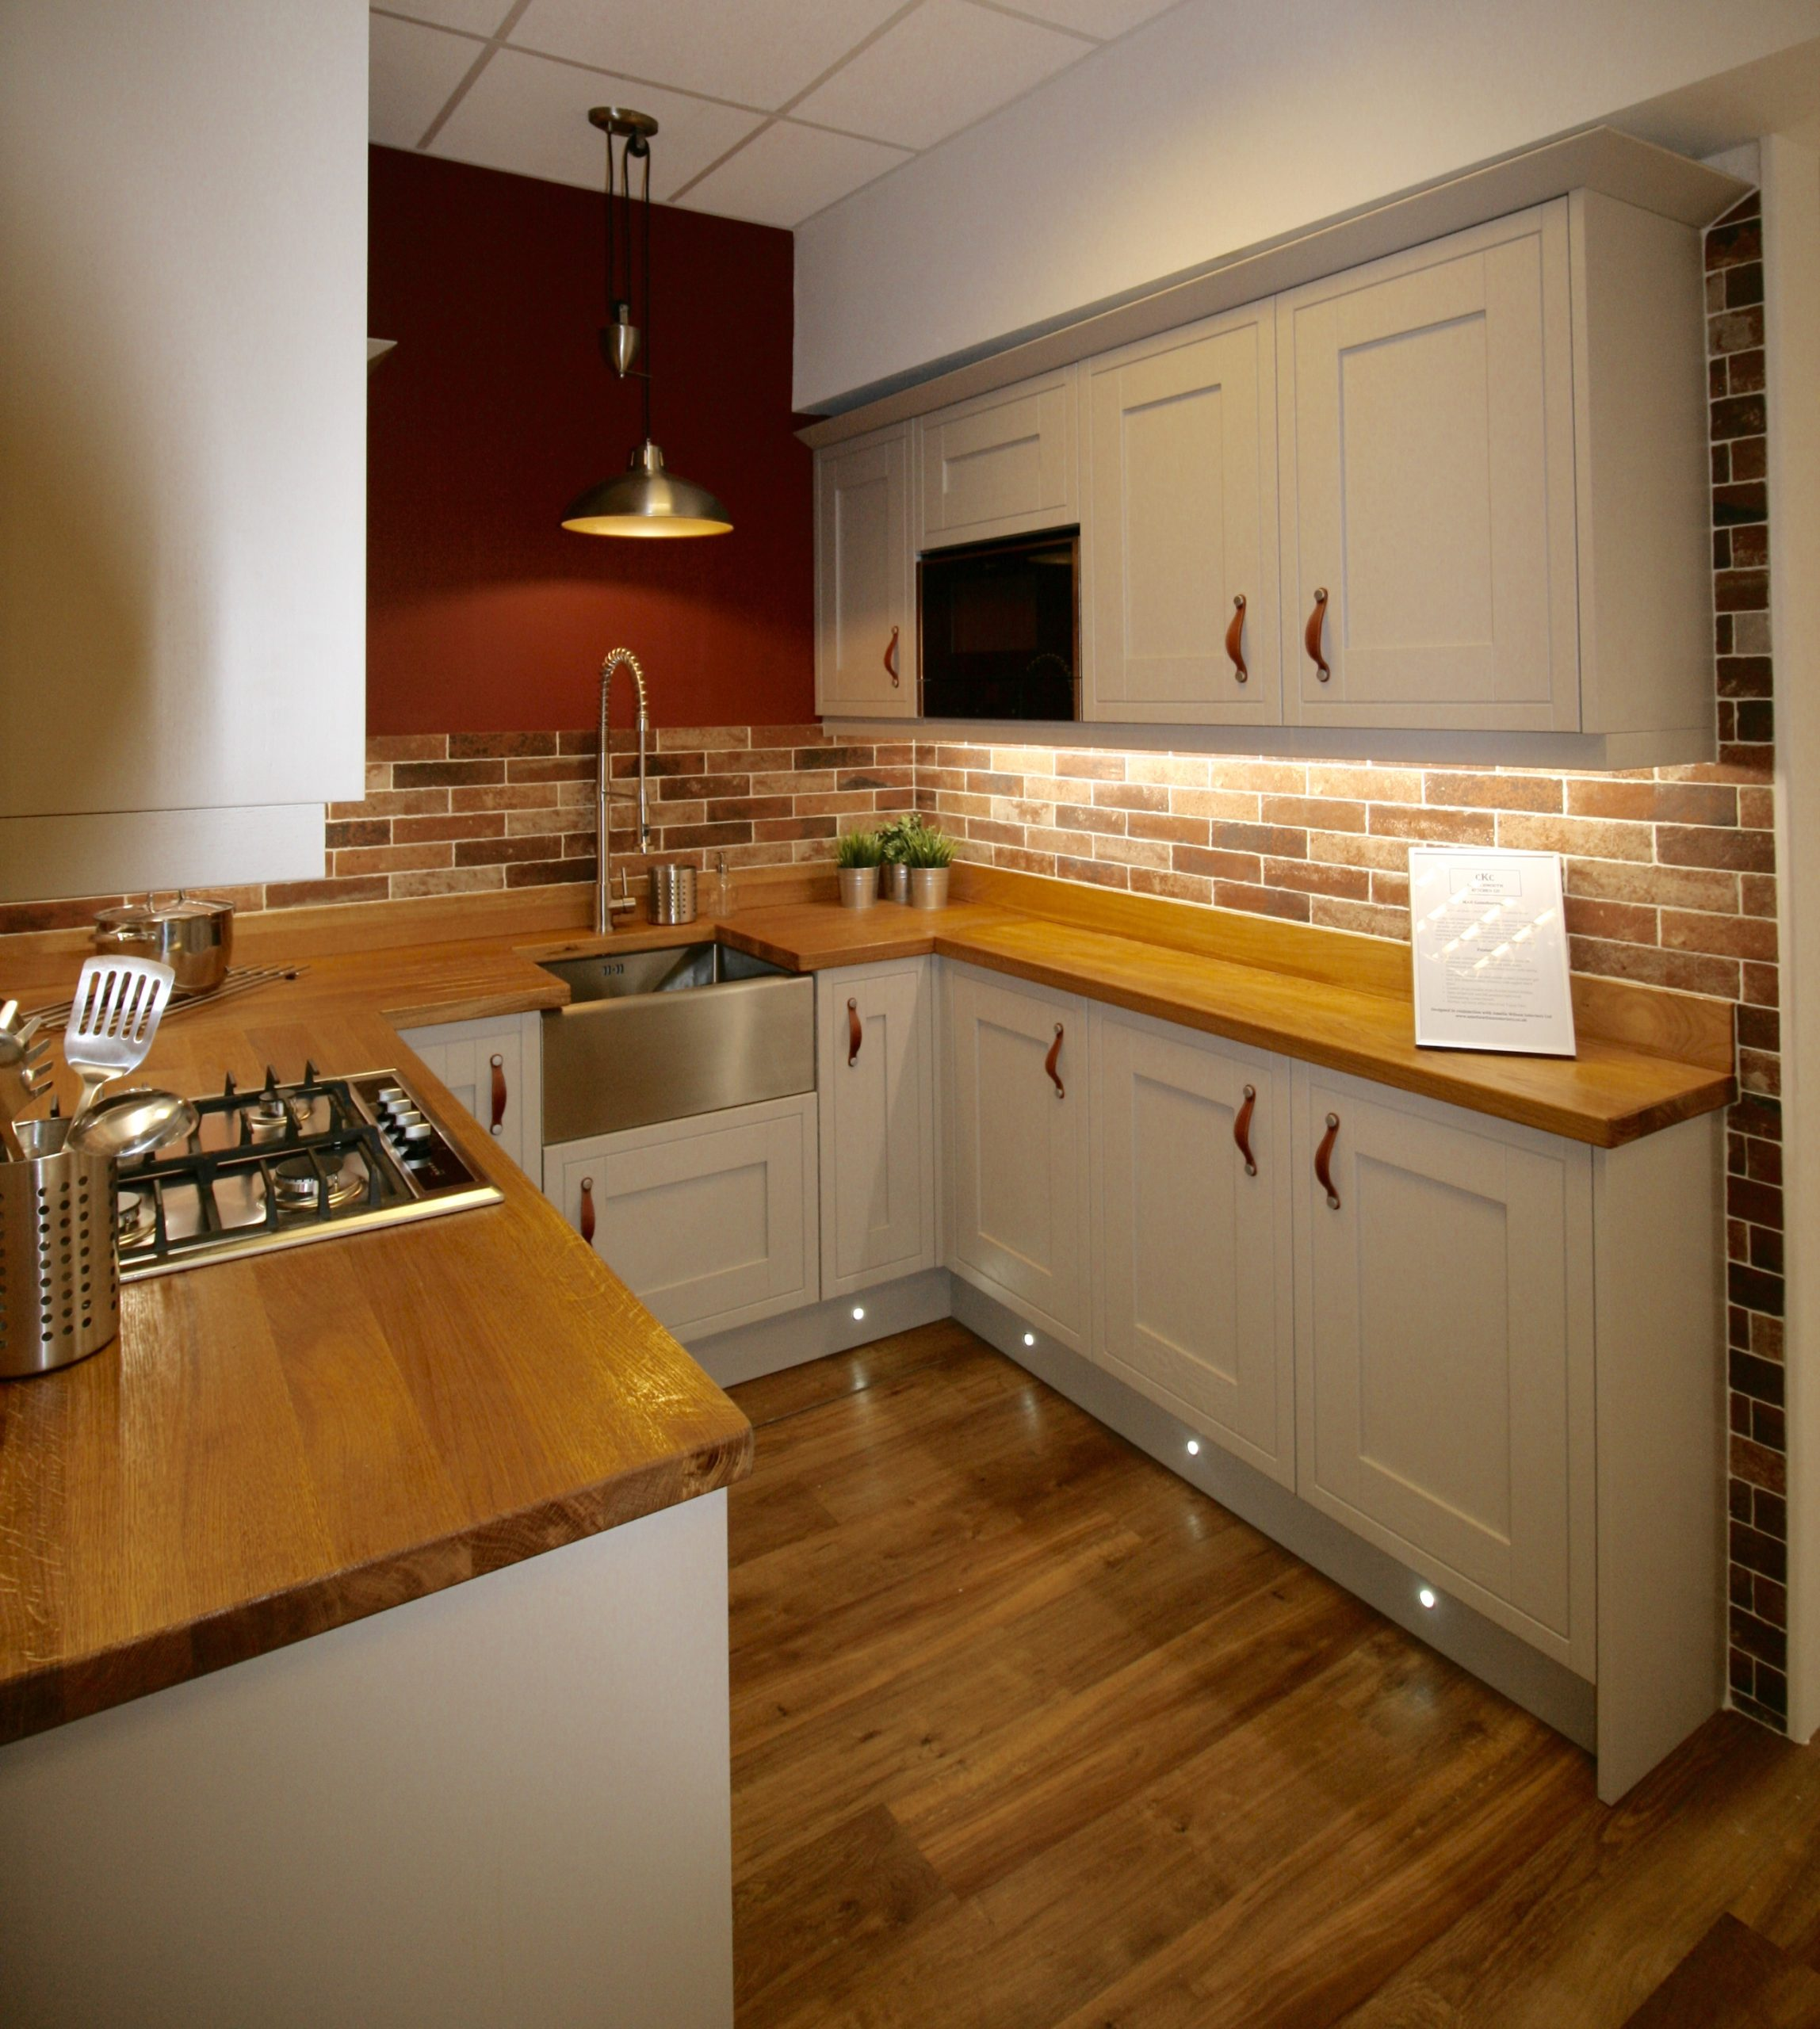 Integrated microwave in the narrow side of the galley kitchen, lit from below by spots in the plinth